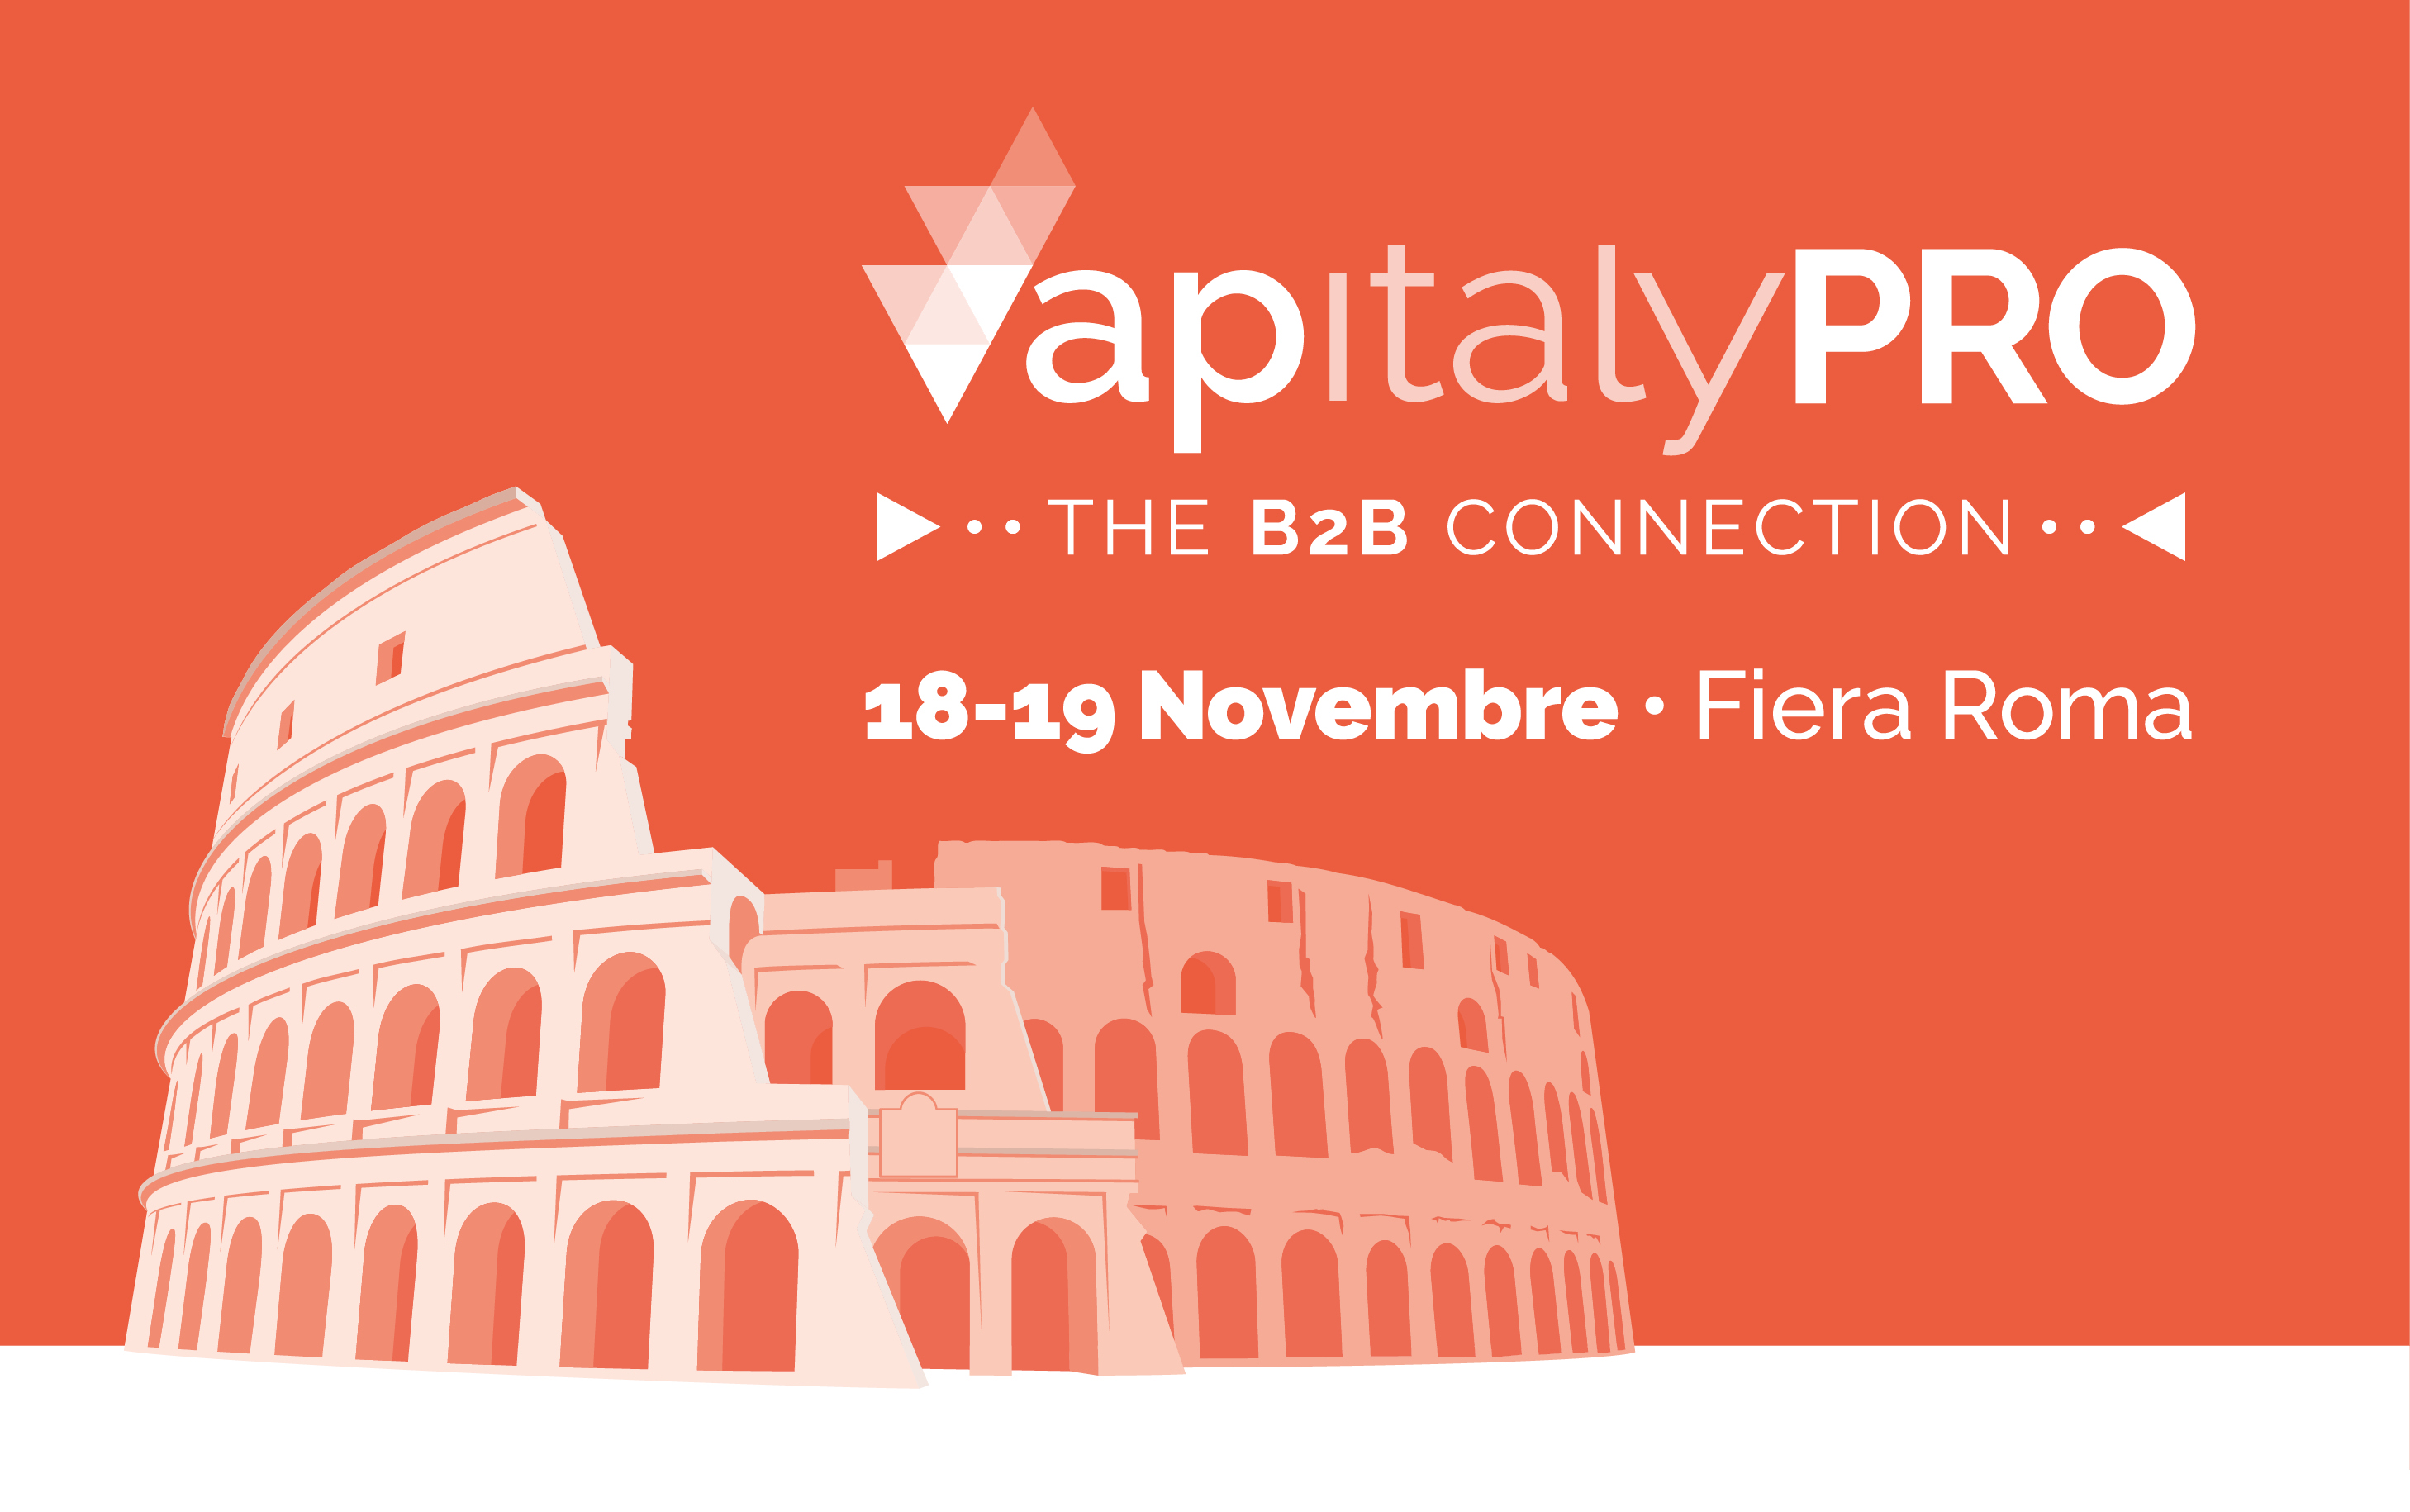 VapitalyPRO 2018: here are the official dates.  The exhibition will take place on 18th and 19th November at Fiera Roma Exhibition center (Rome, Italy).